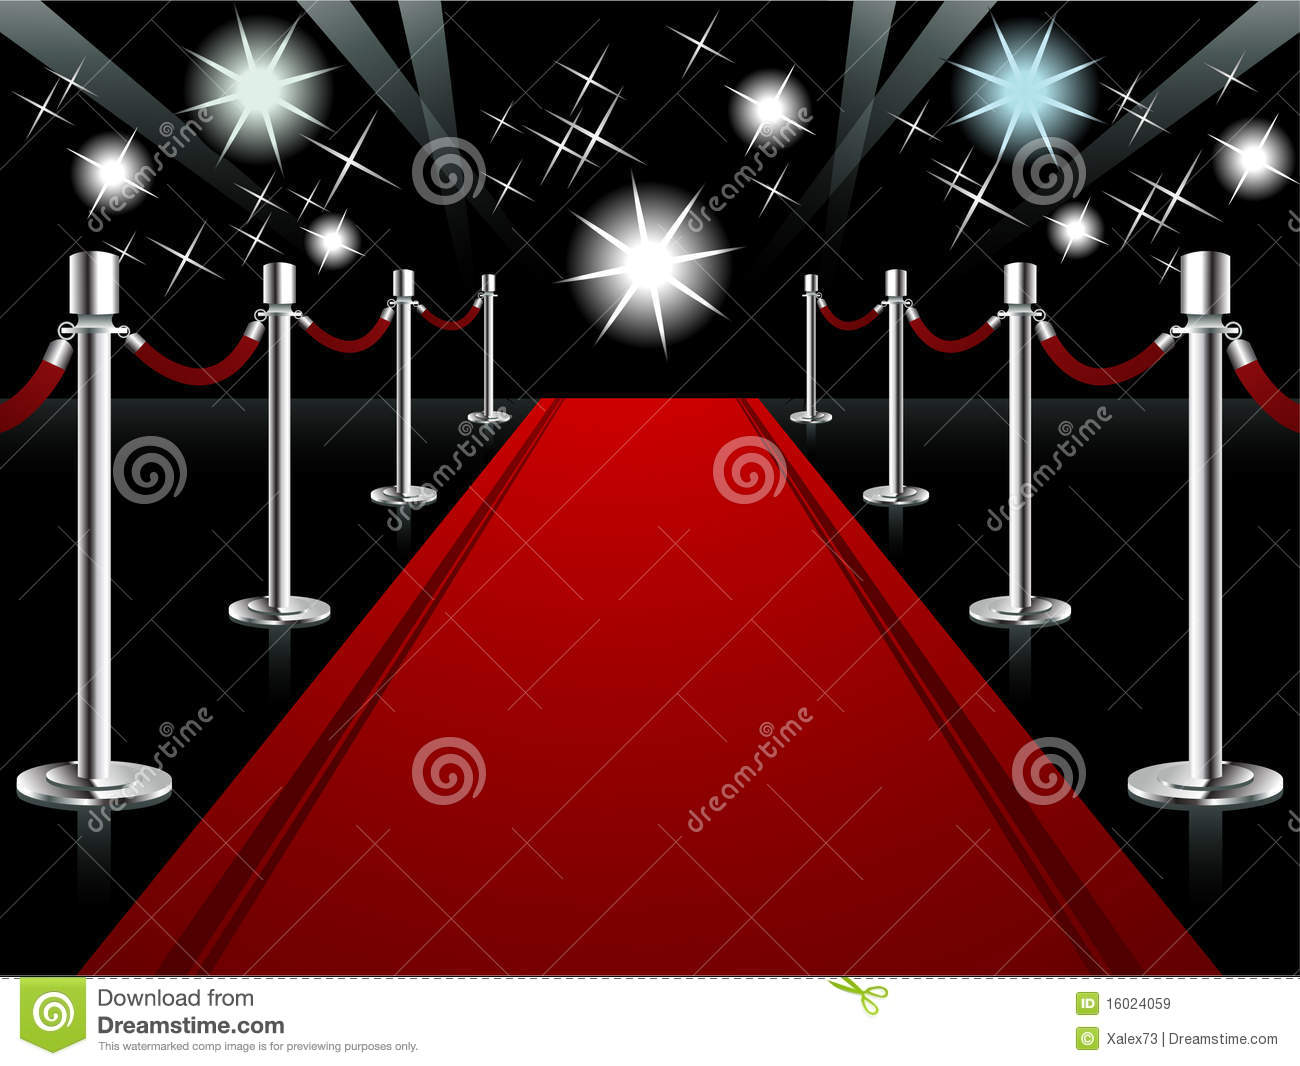 Roter Teppich Wallpaper Red Carpet Stock Vector Image Of Fence Entrance Light